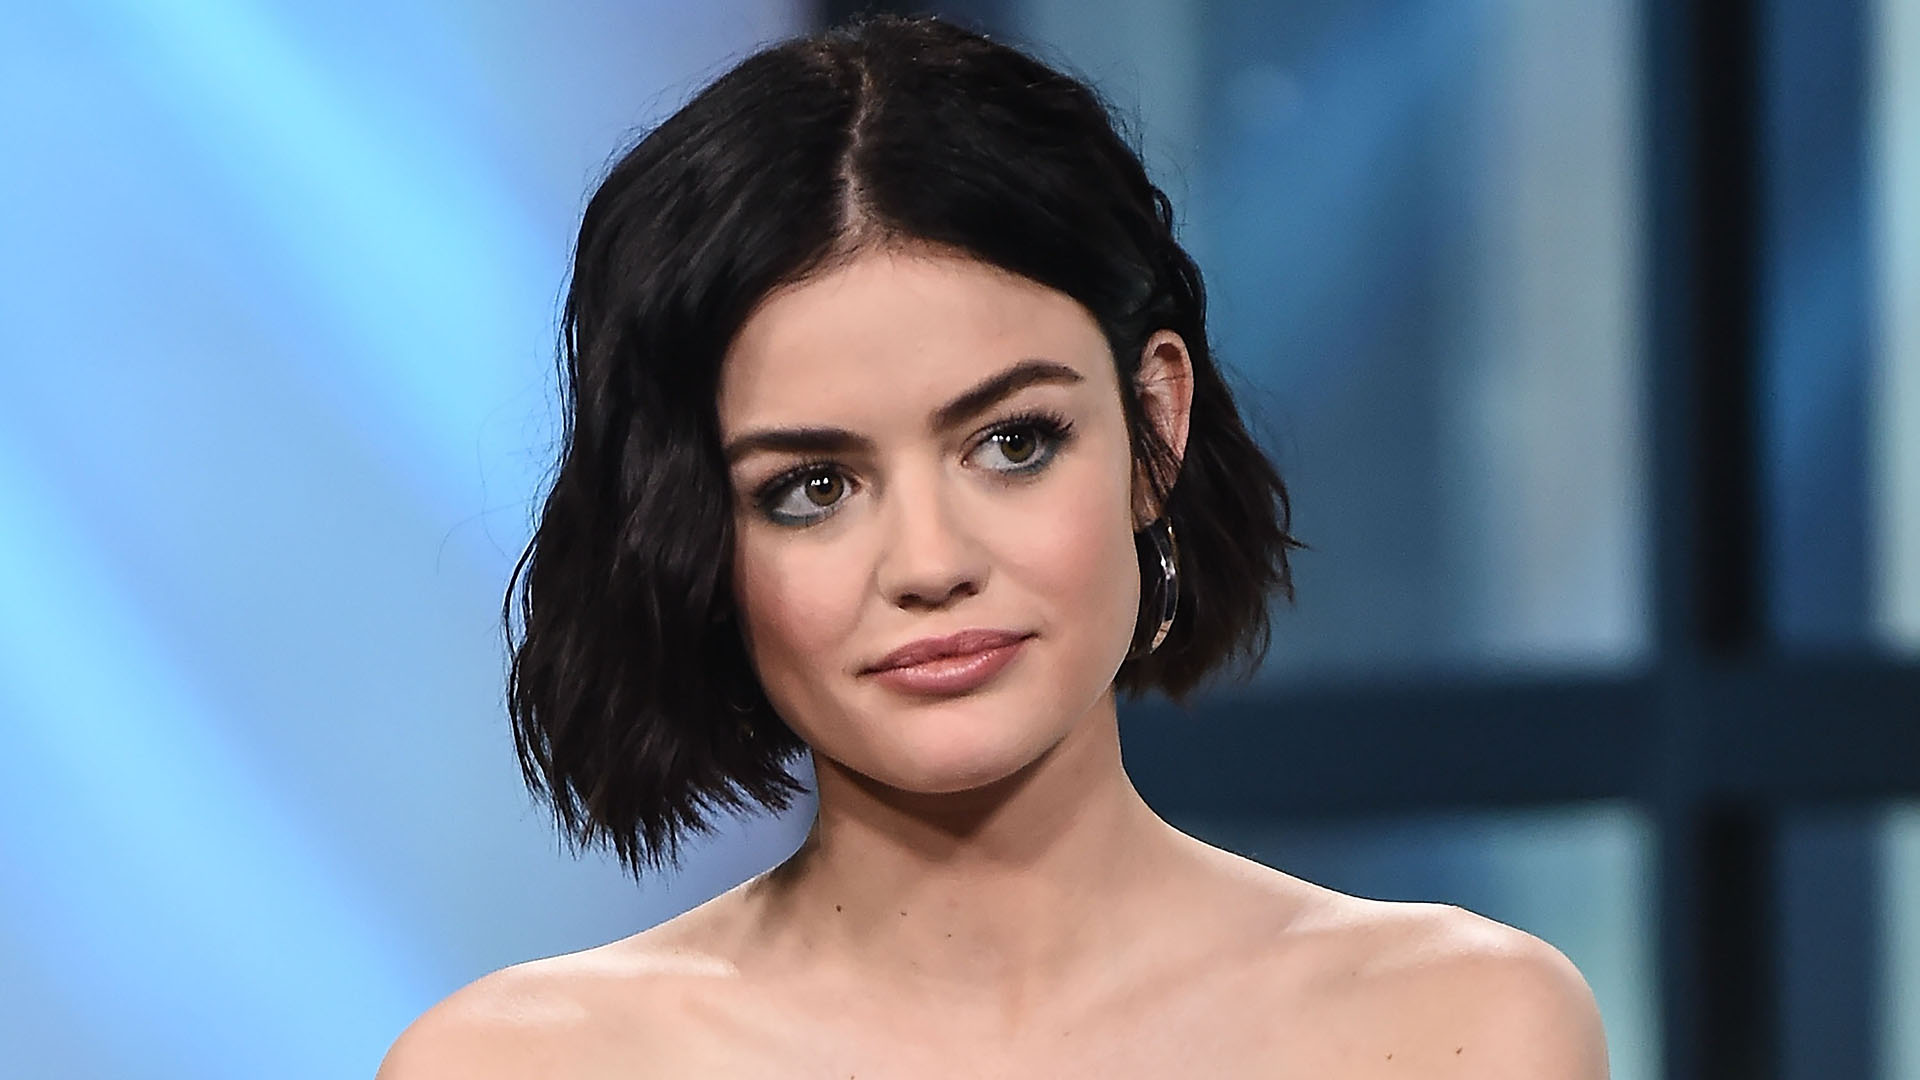 Celebrity Lucy Hale naked (57 foto and video), Topless, Fappening, Boobs, swimsuit 2020